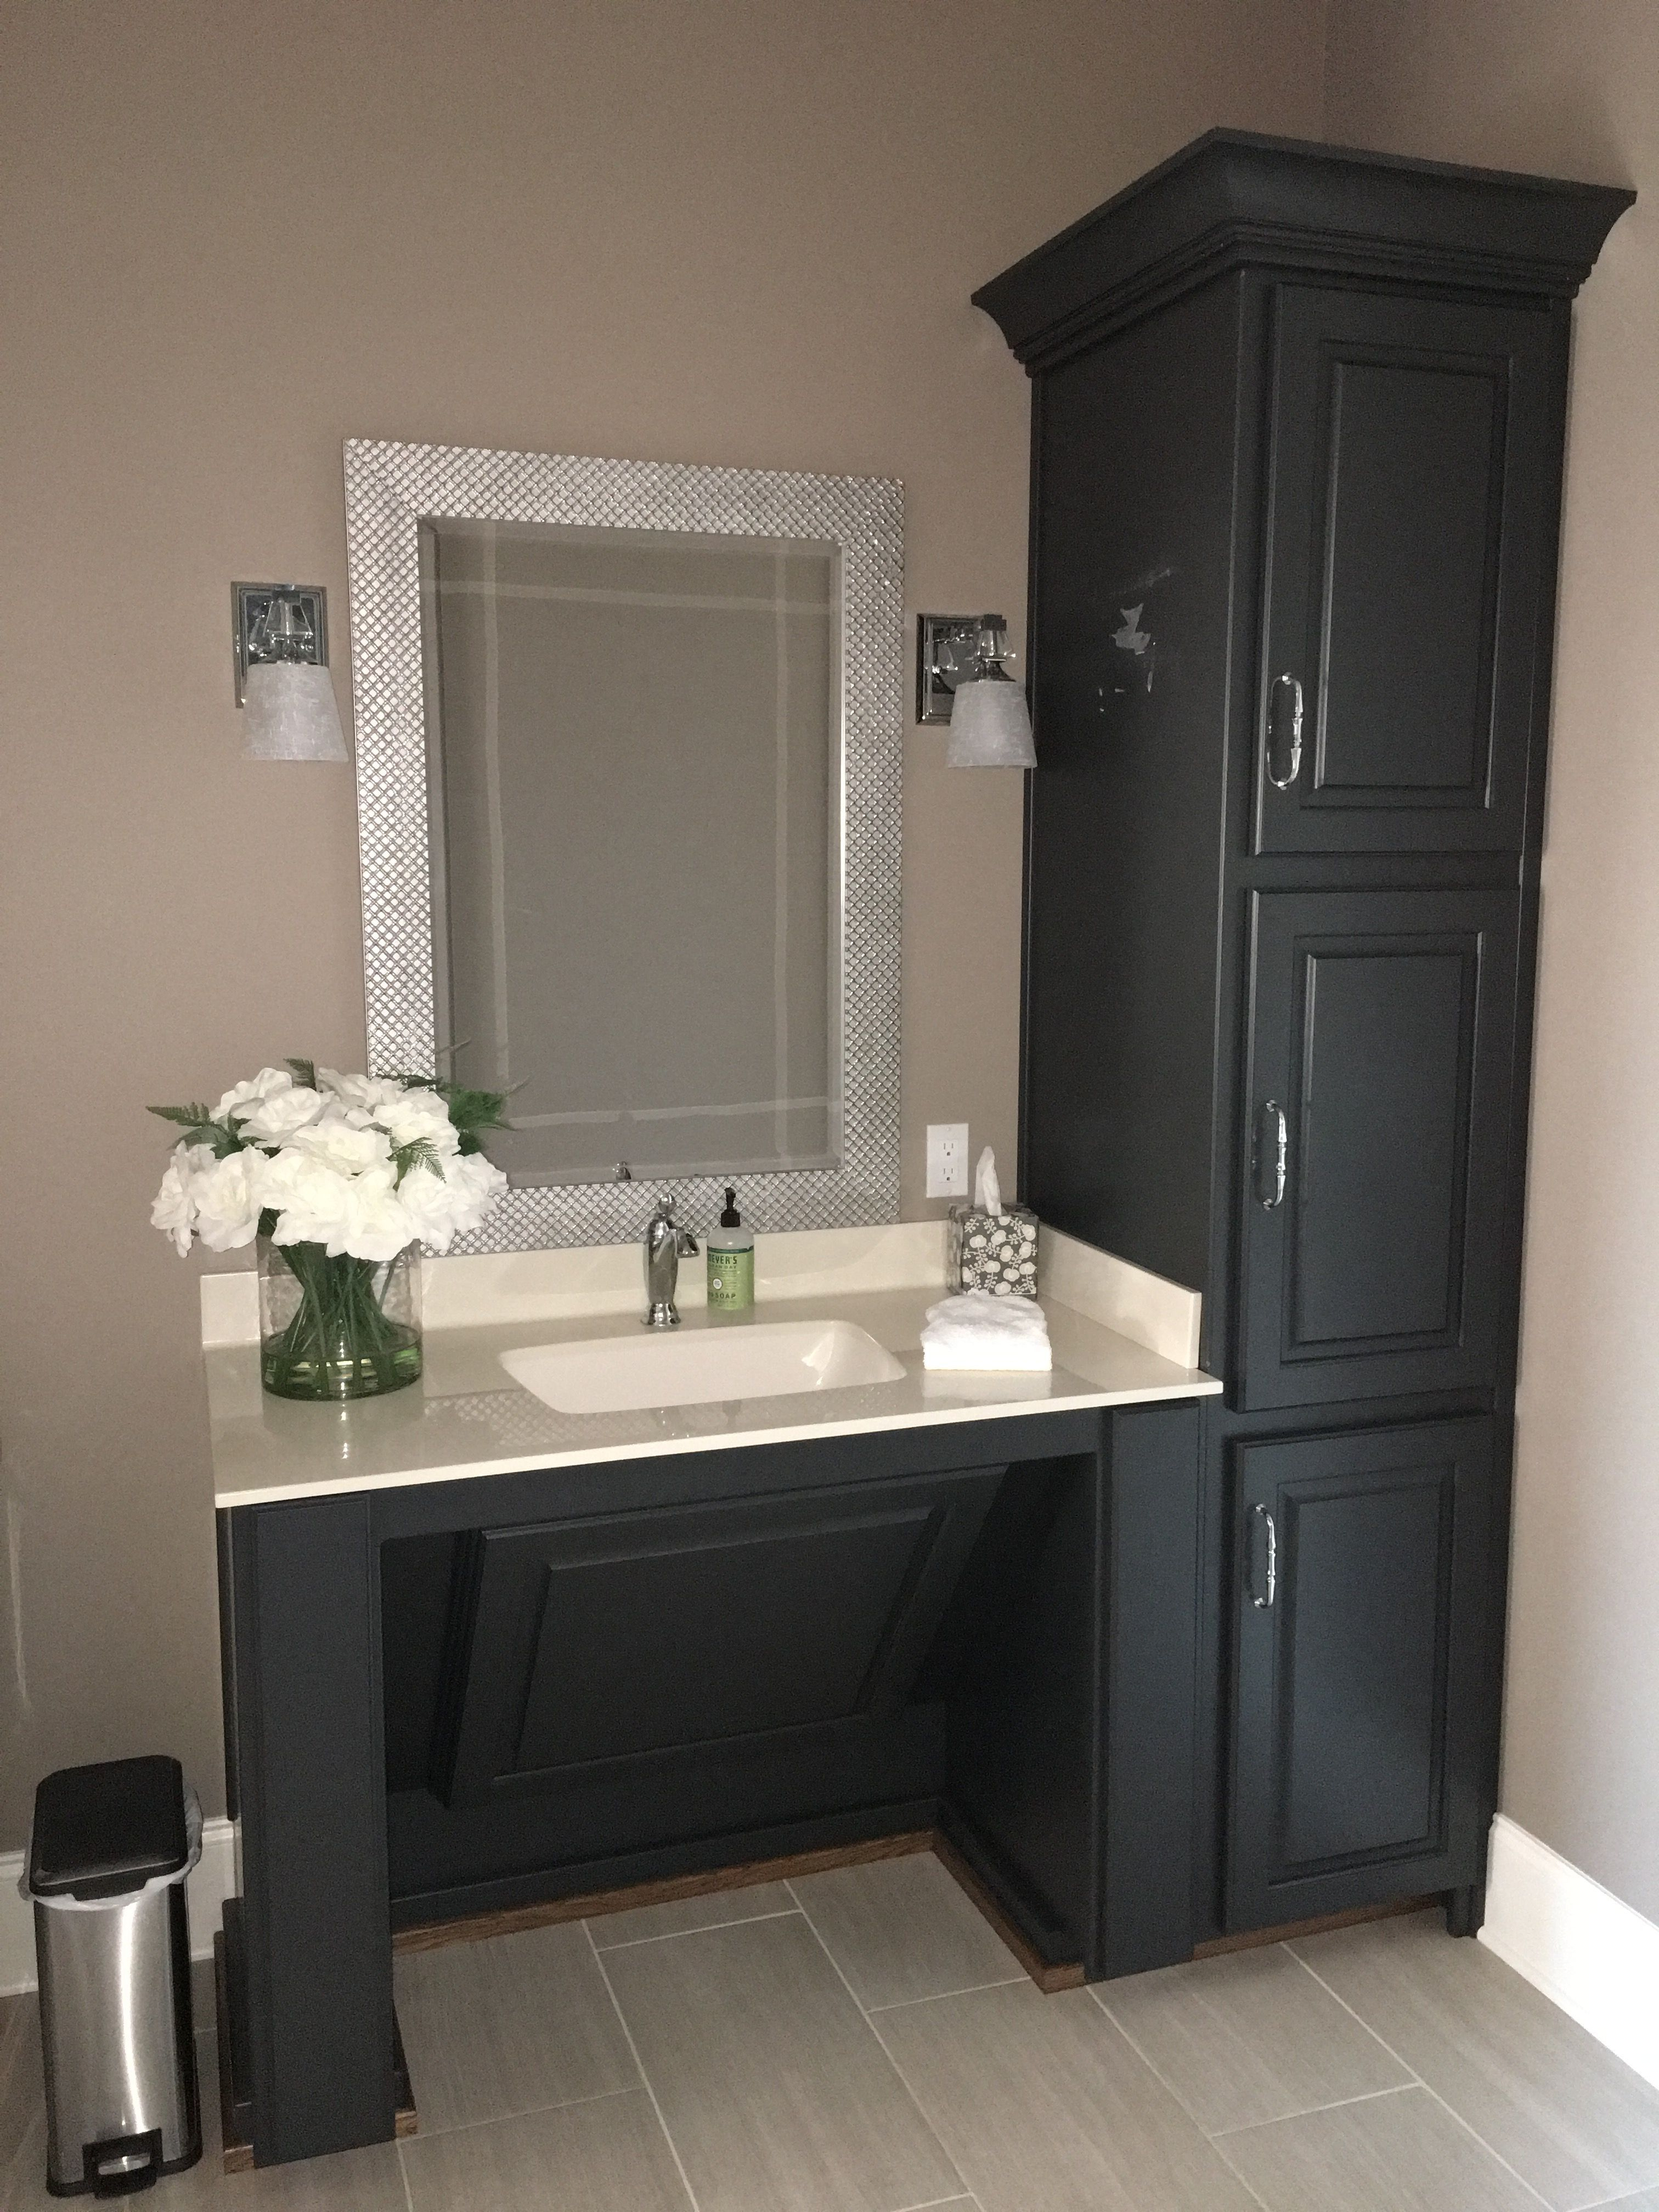 Image Result For Wall Mounted Bathroom Sink With Counter Space For